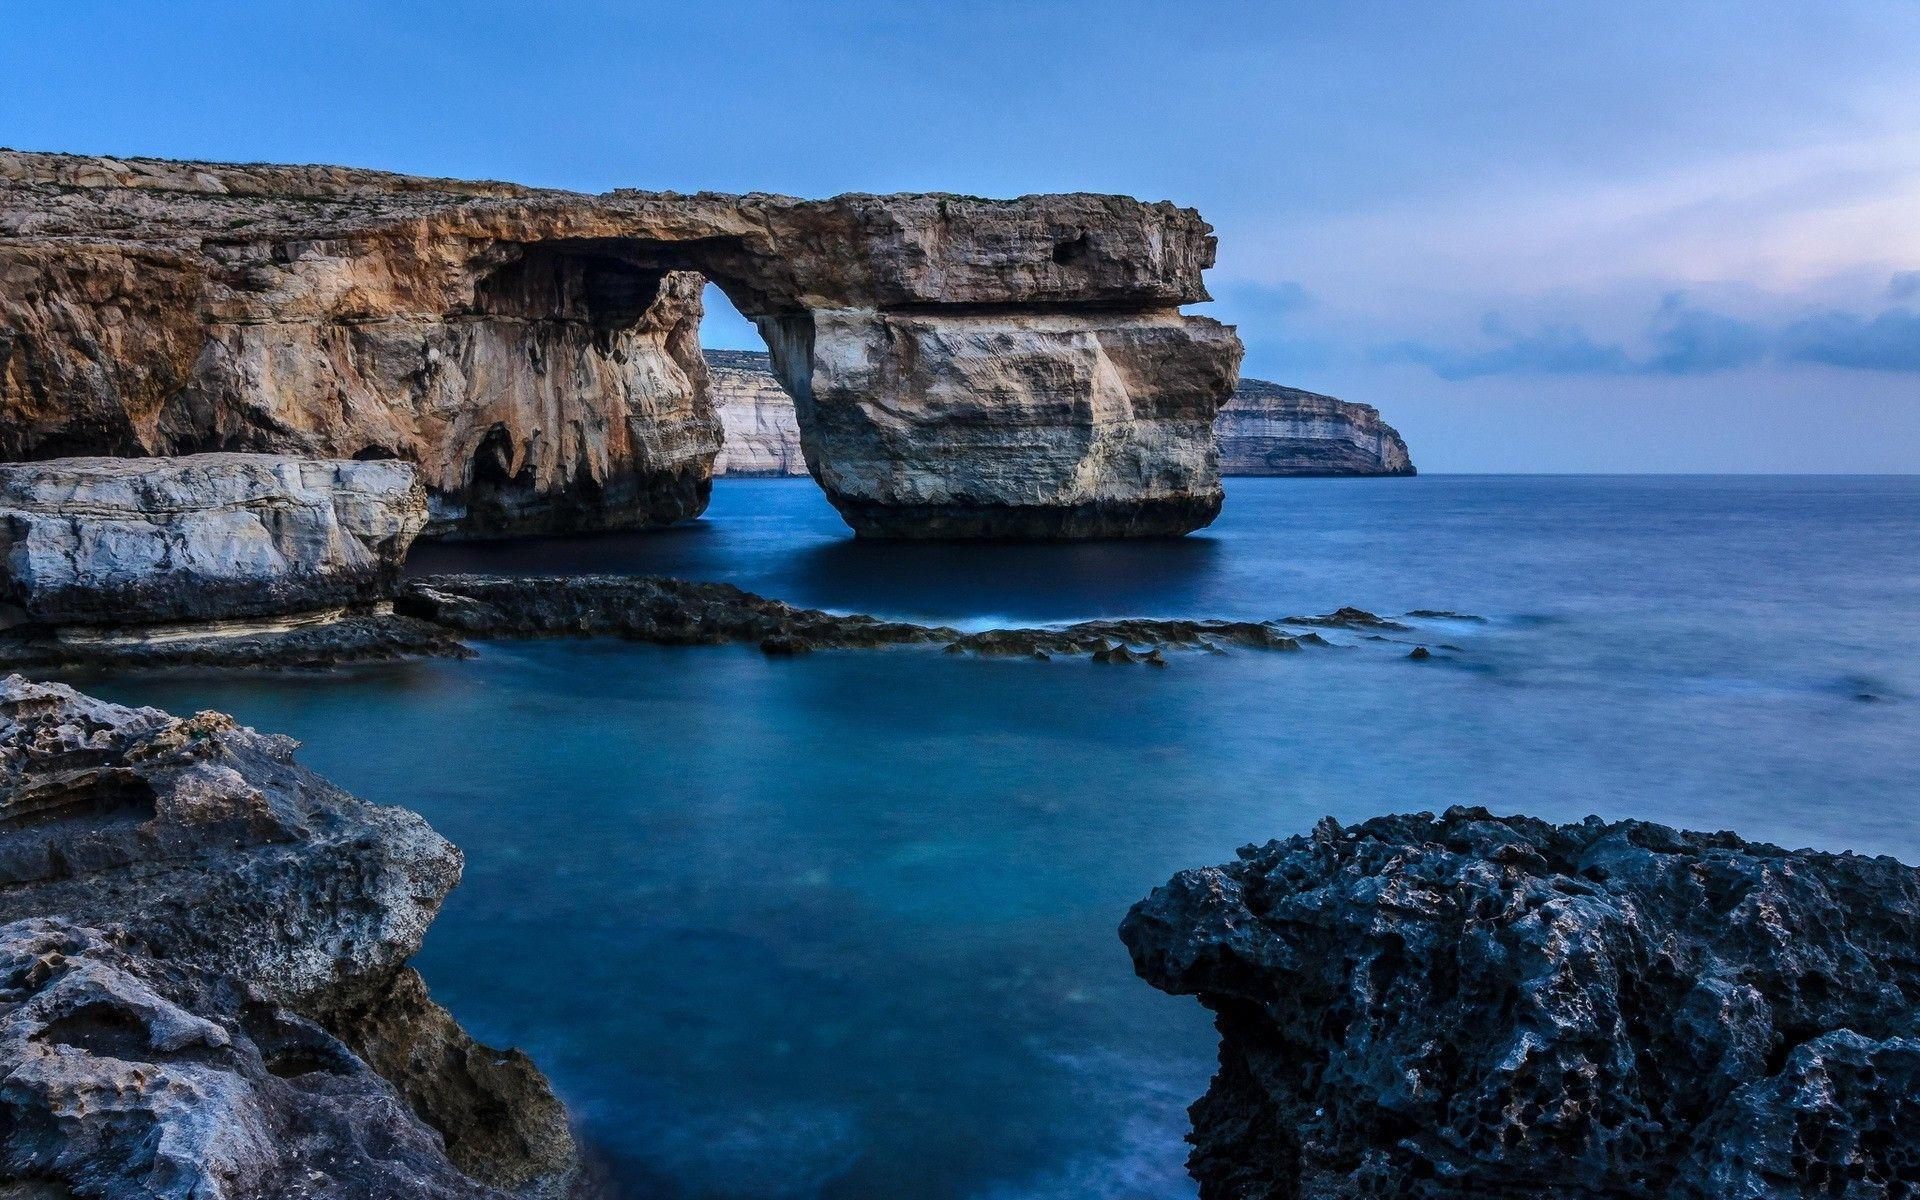 Malta Rock Sea Coast | Nature HD 4k Wallpapers